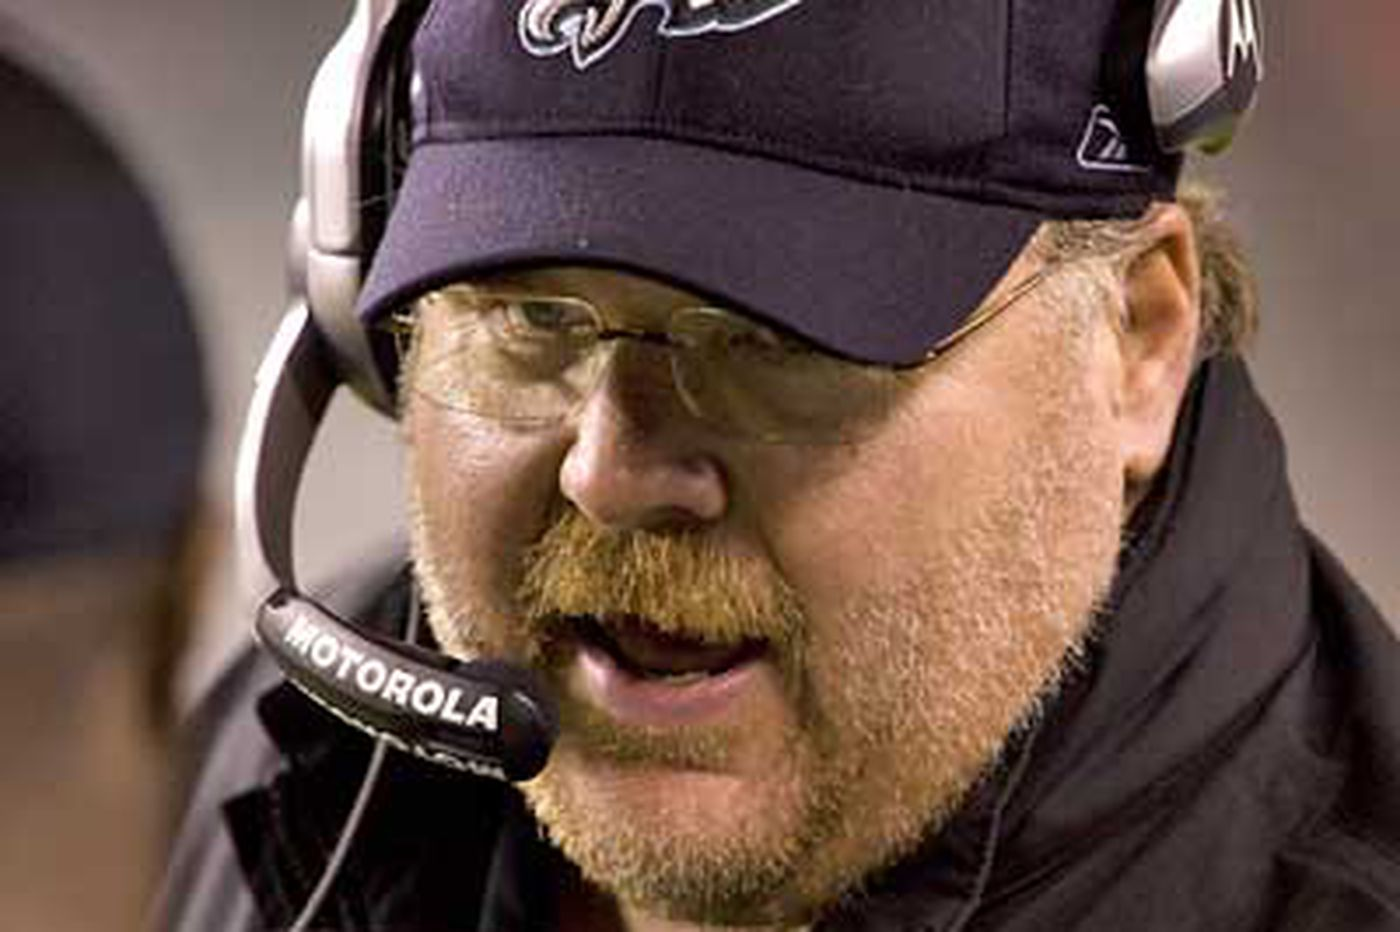 Les Bowen: The Bottom Line: Making playoffs a big plus for Eagles coach Reid